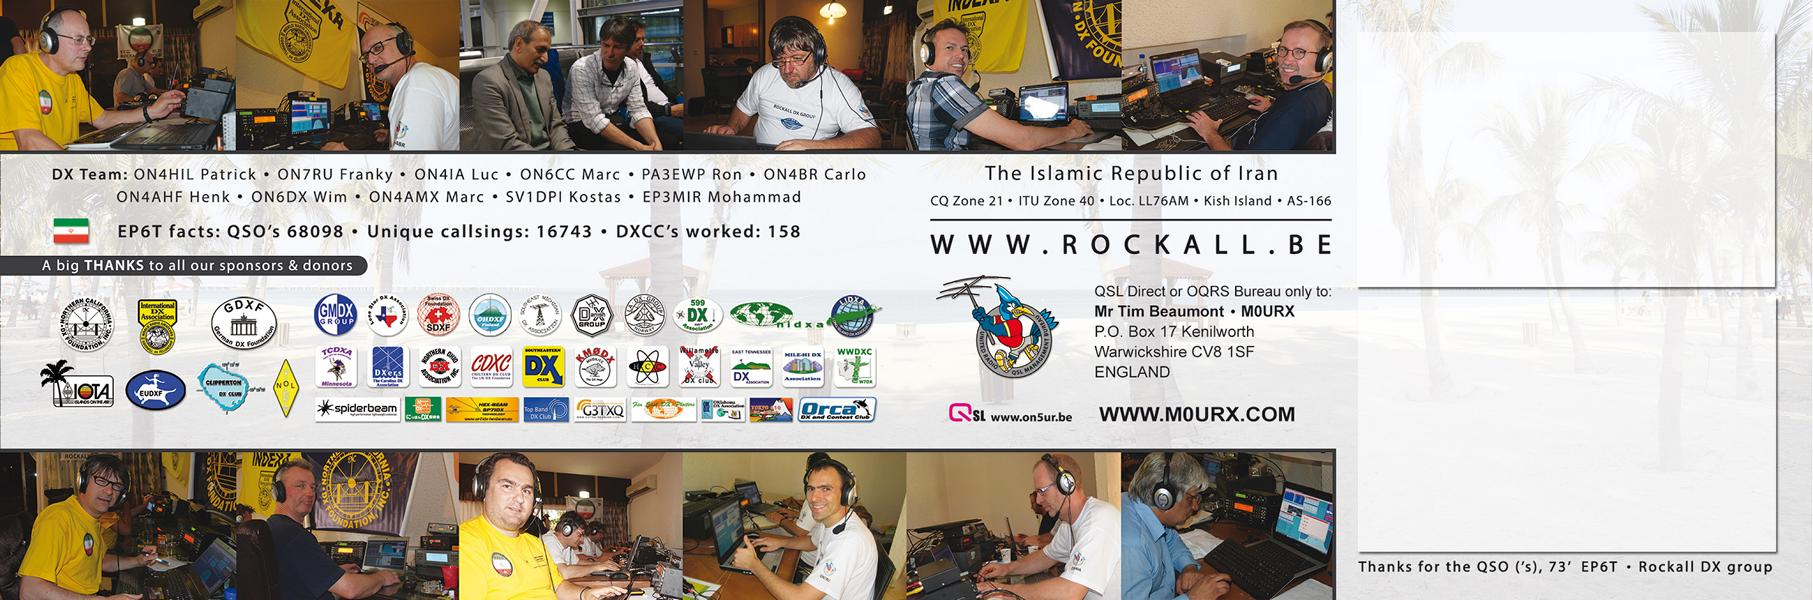 K800 QSL-EP6T-DOUBLE-2-BACK